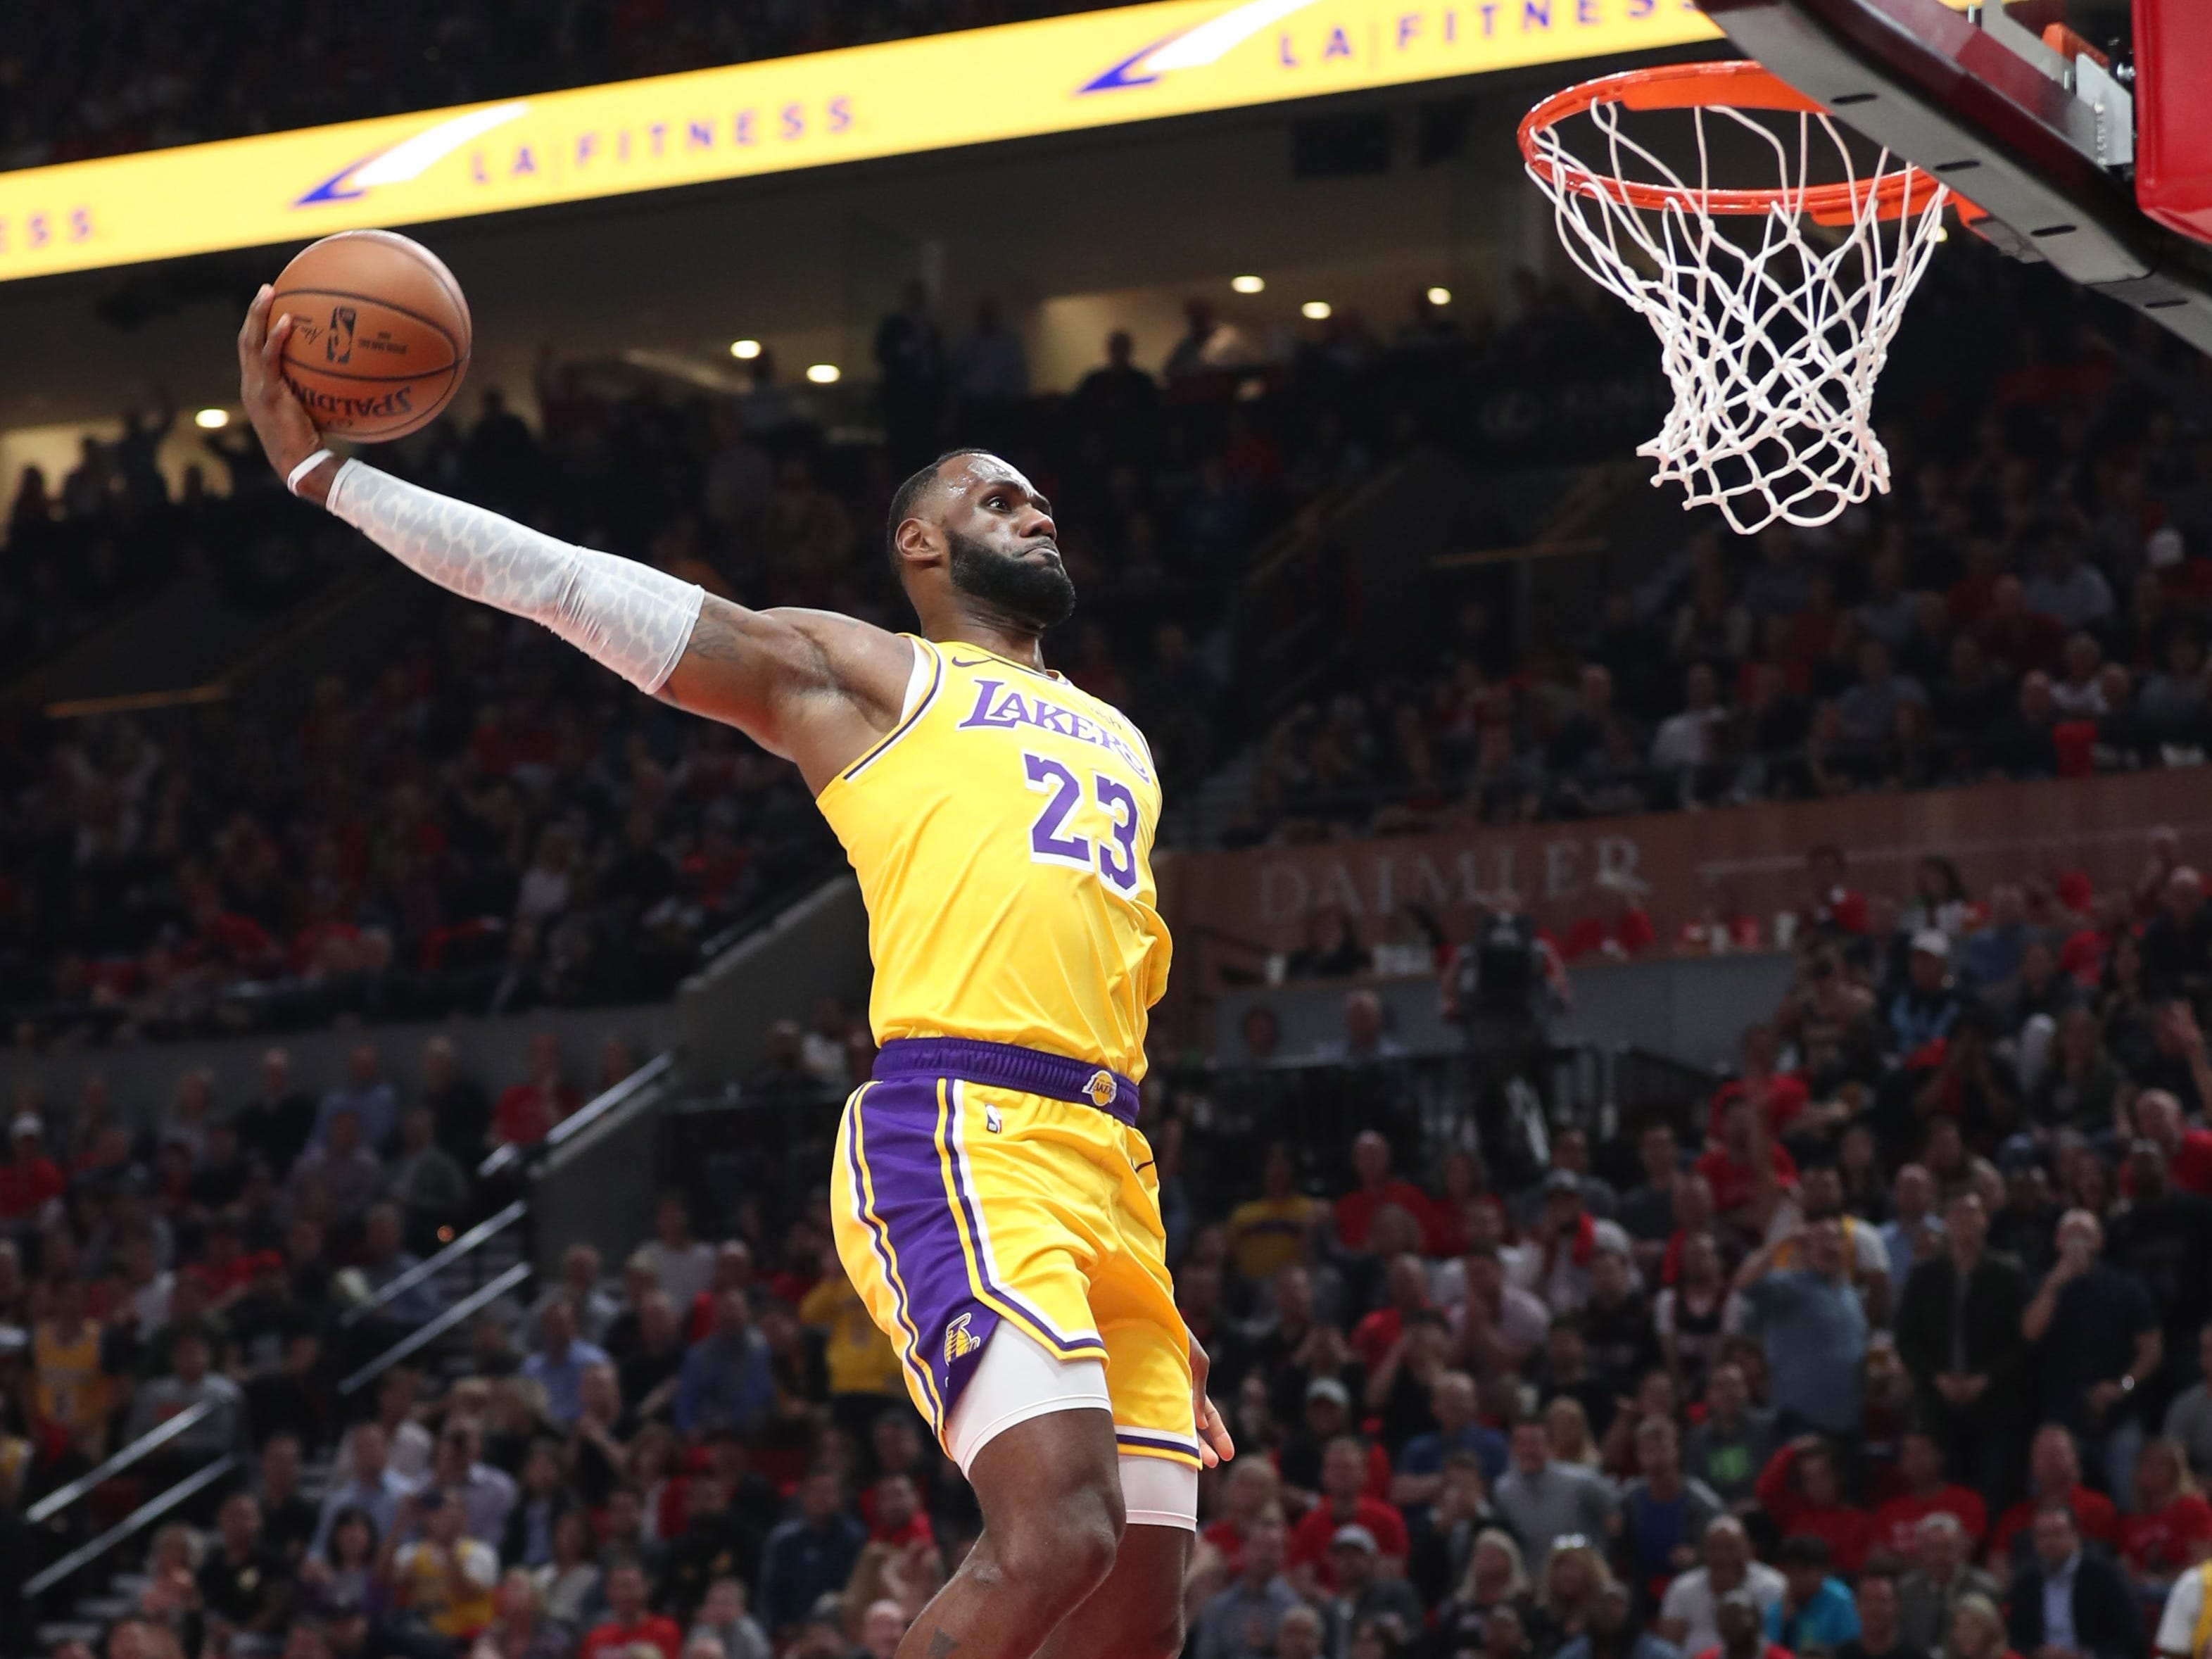 Oct. 18: LeBron James soars to the hoop for a one-handed slam during the first quarter in Portland, his first bucket as a member of the Lakers.